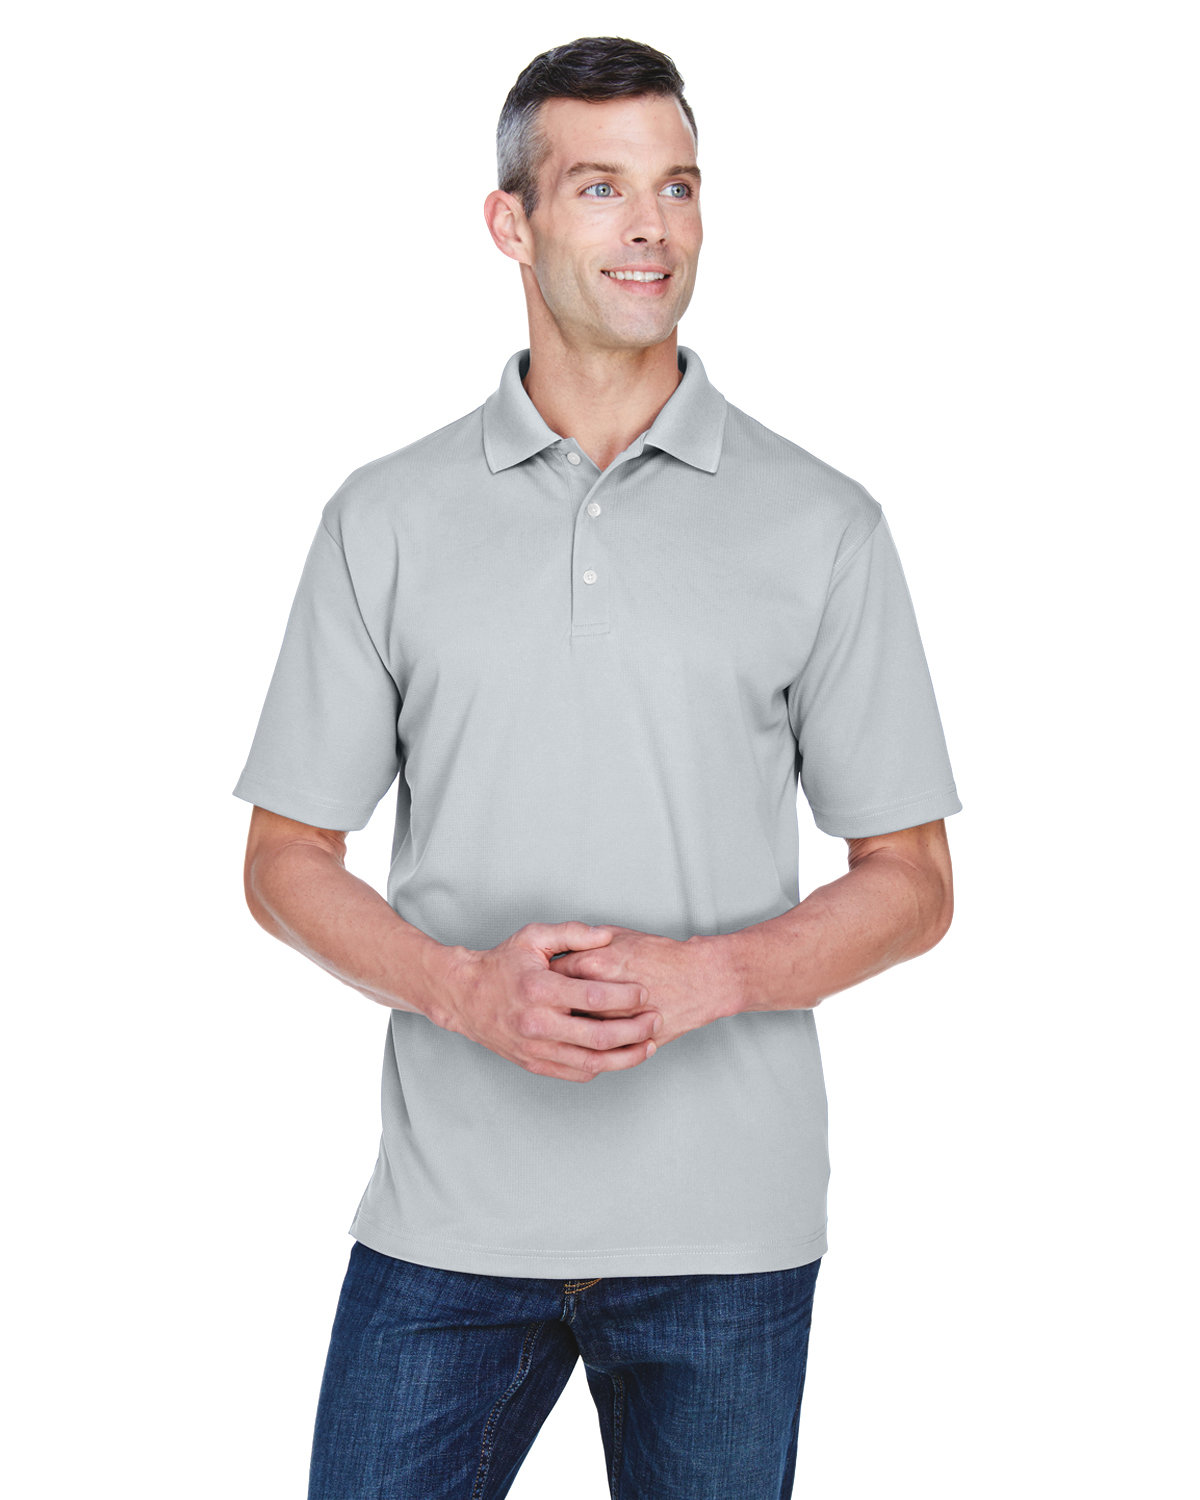 UltraClub Men's Cool & Dry Stain-Release Performance Polo SILVER